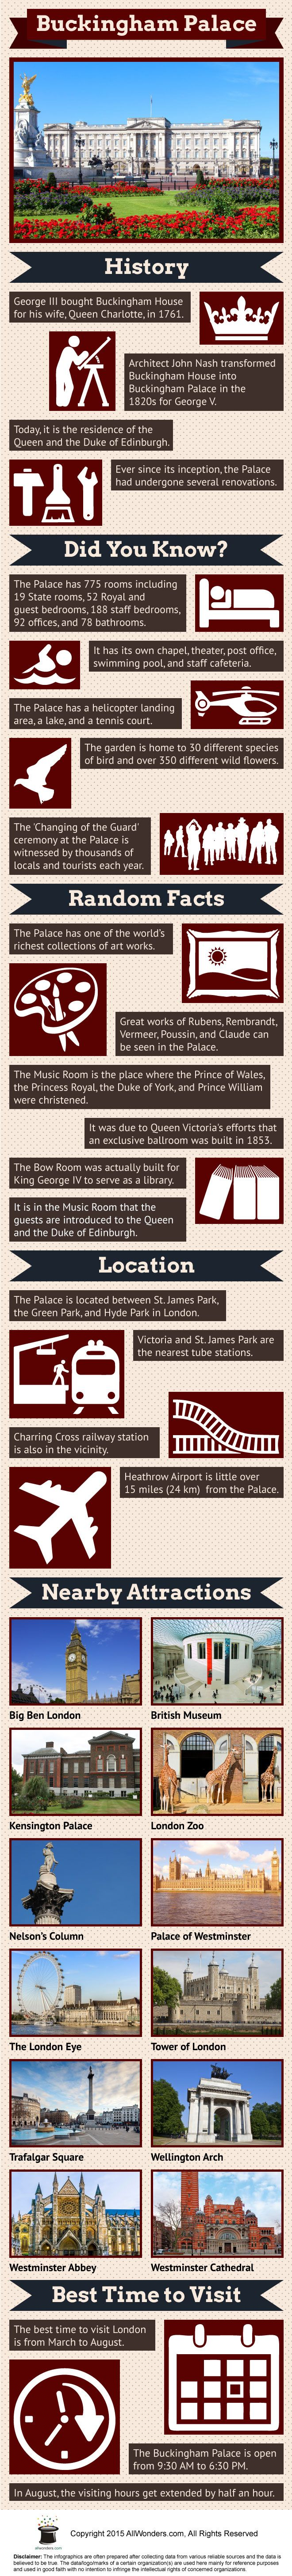 Buckingham Palace Infographic                                                                                                                                                                                 More